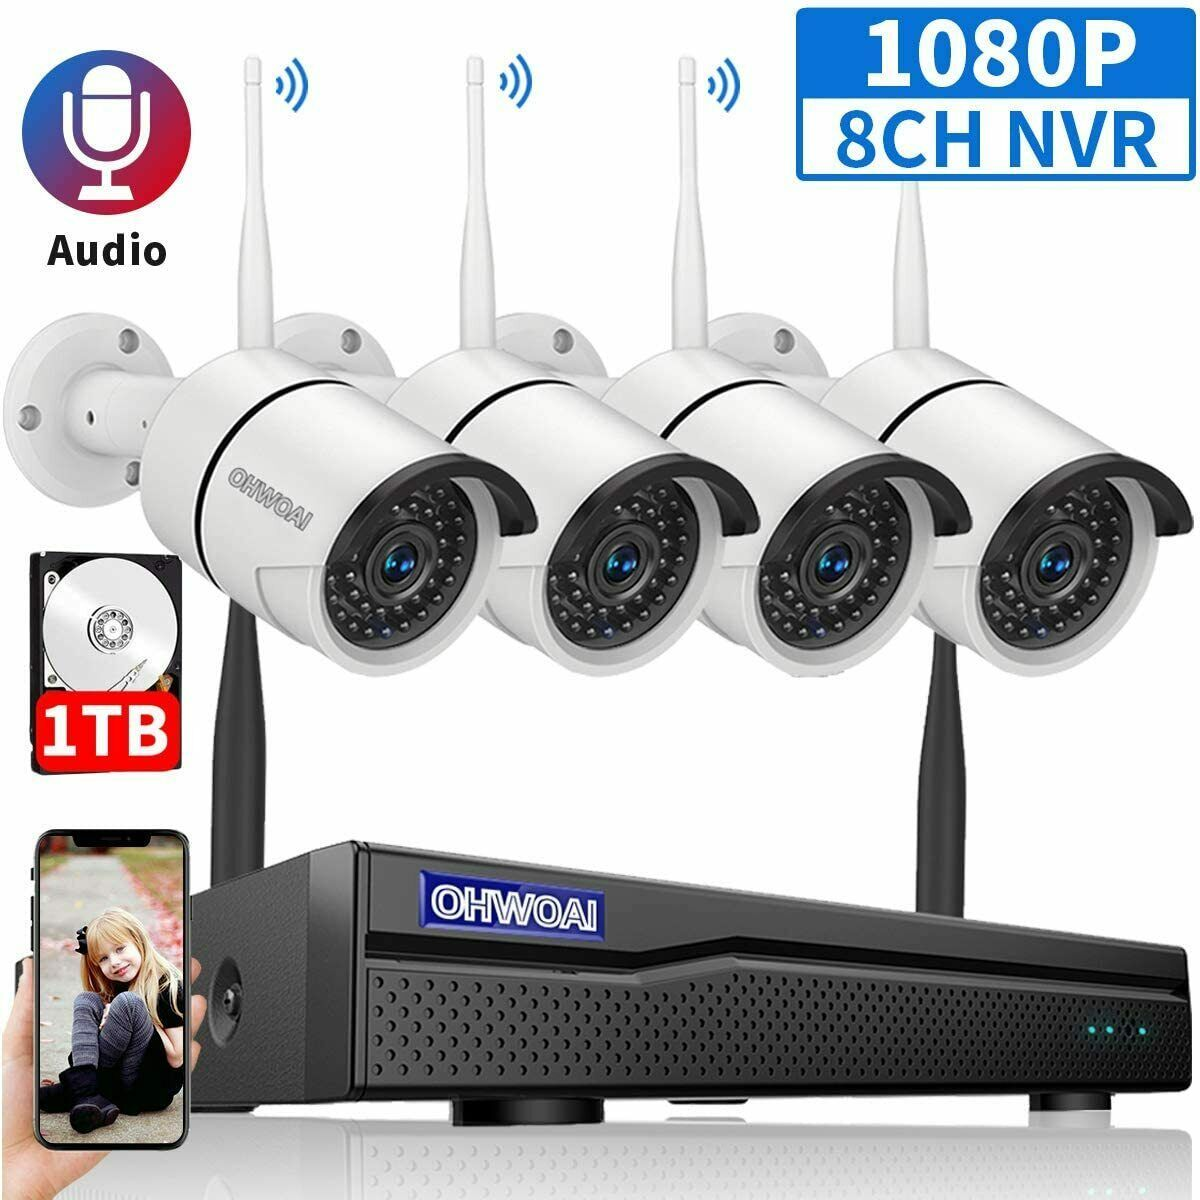 Security Camera System Wireless Outdoor 8 Channel 4pcs 1080p Cctv Cameras Home Security Security Cameras For Home Video Security System Cctv Camera For Home